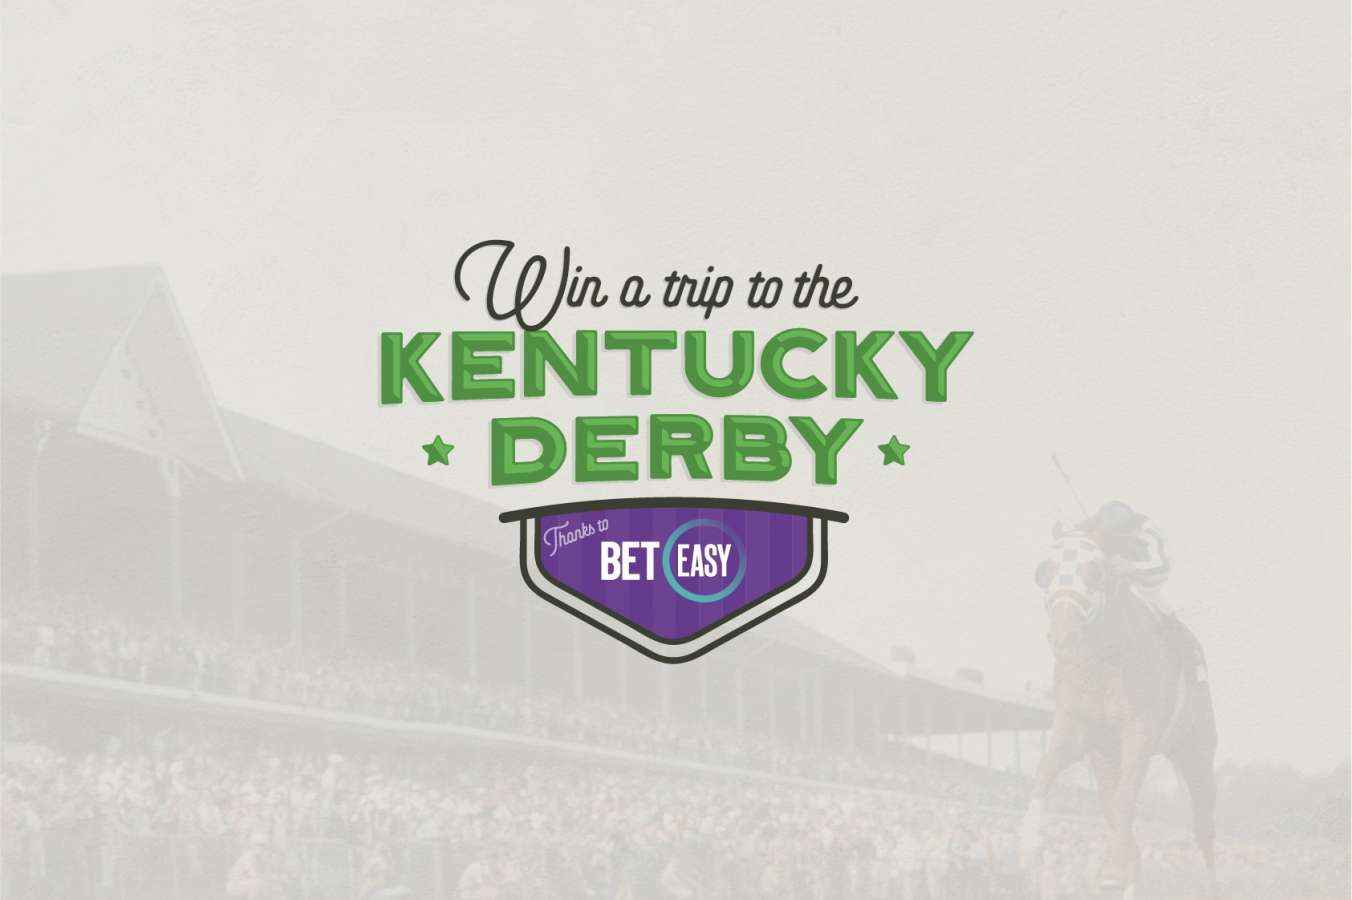 Kentucky Derby competition